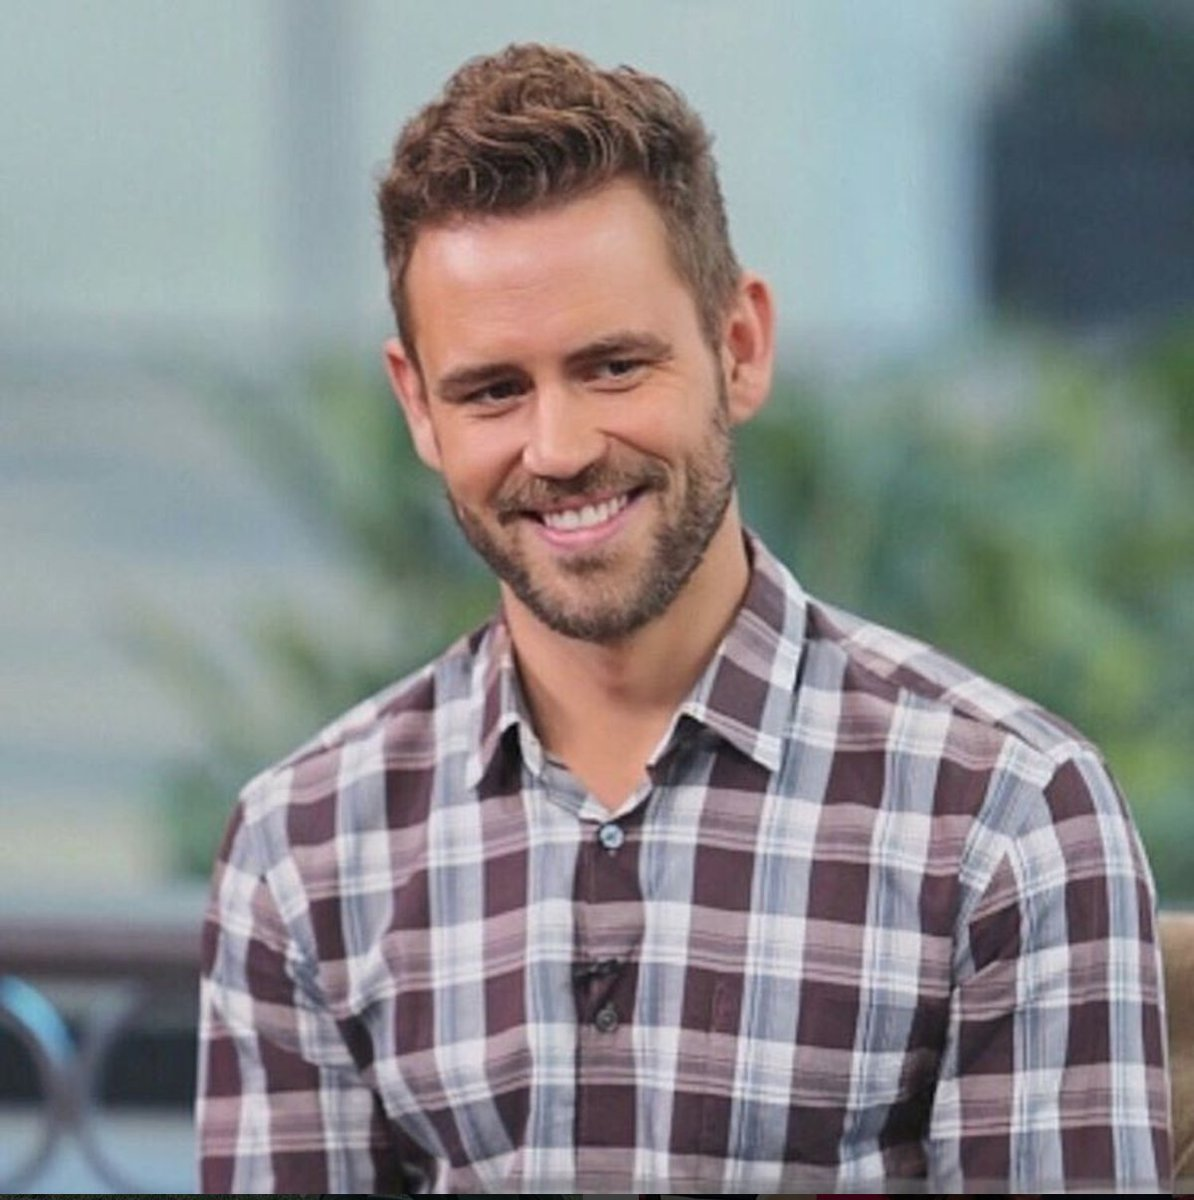 Preview Of What The Bachelorette Contestants Look Like: Nick Viall (@viallnicholas28)